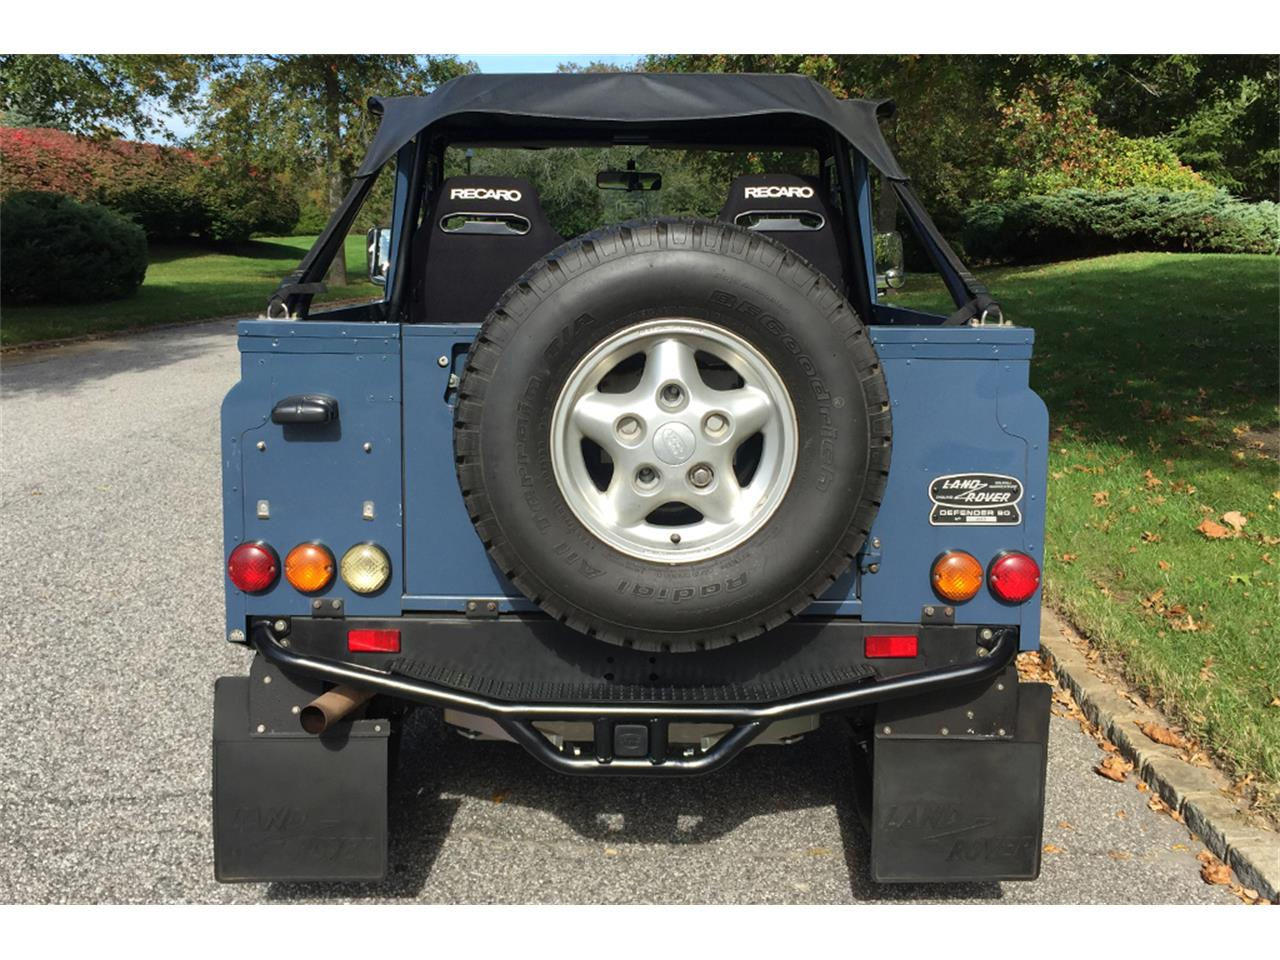 Large Picture of 1997 Land Rover Defender located in New York - $89,000.00 - MC5M